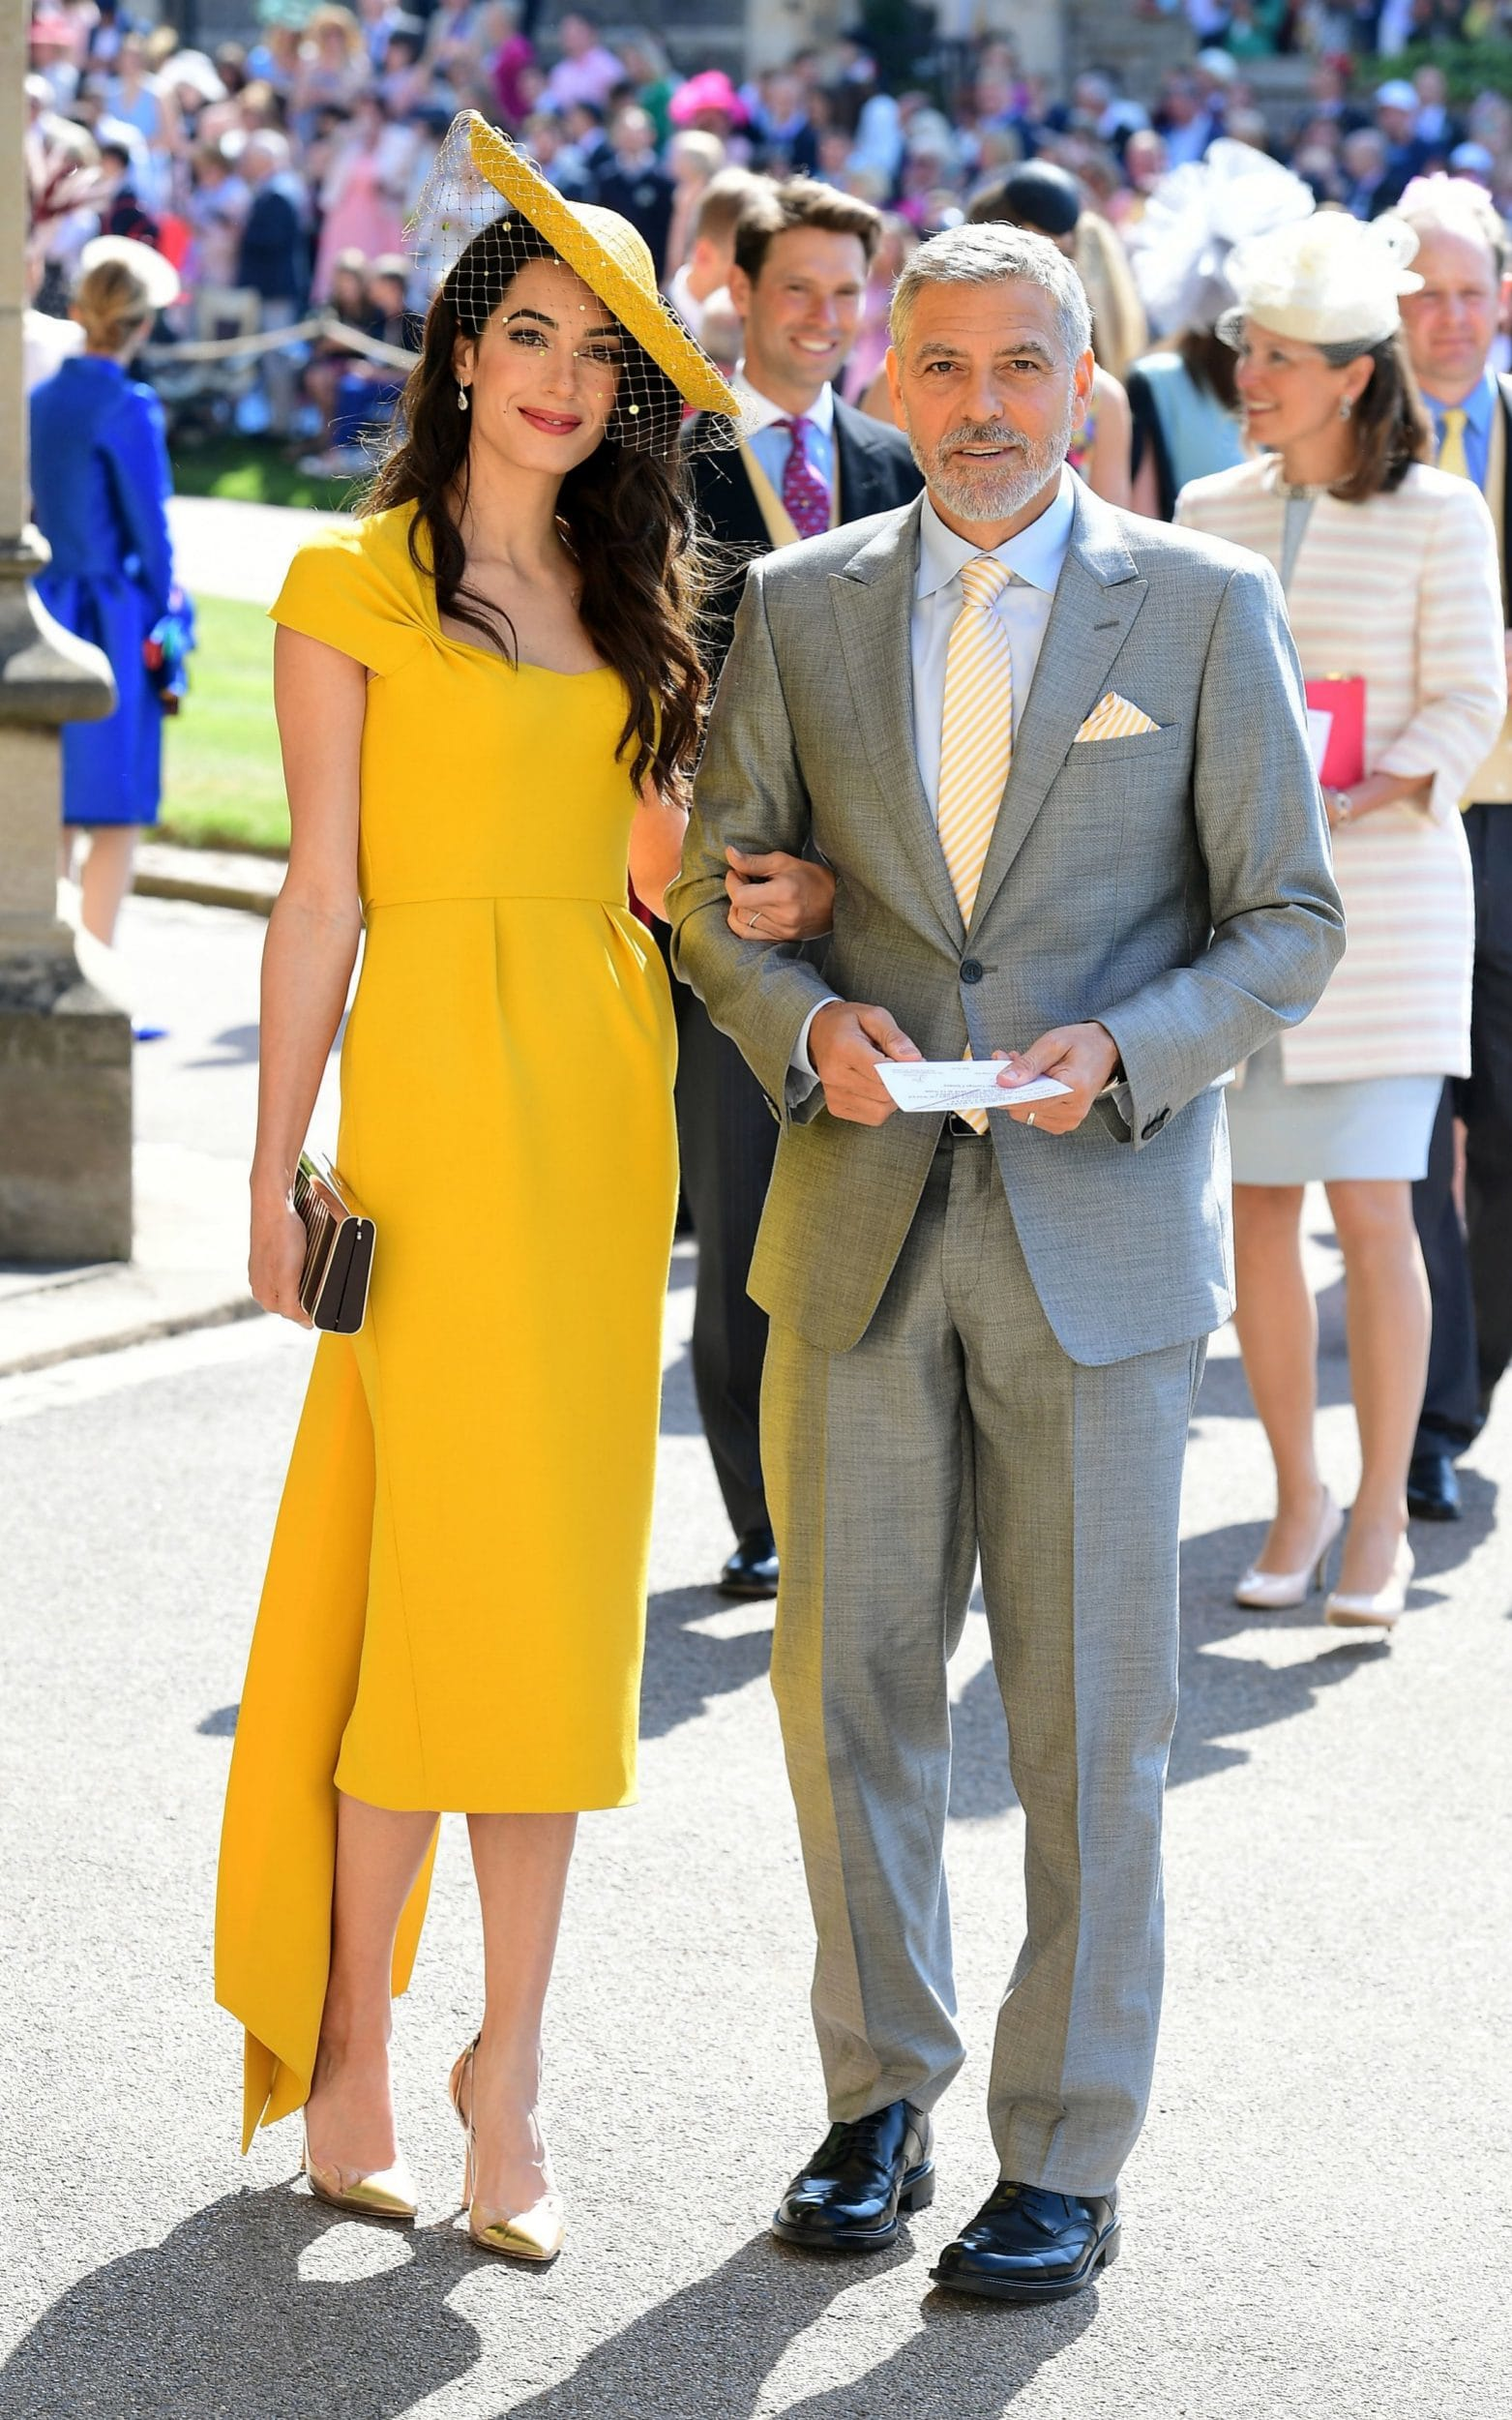 Fashion Patrol - Royal Wedding 2018: The Guests